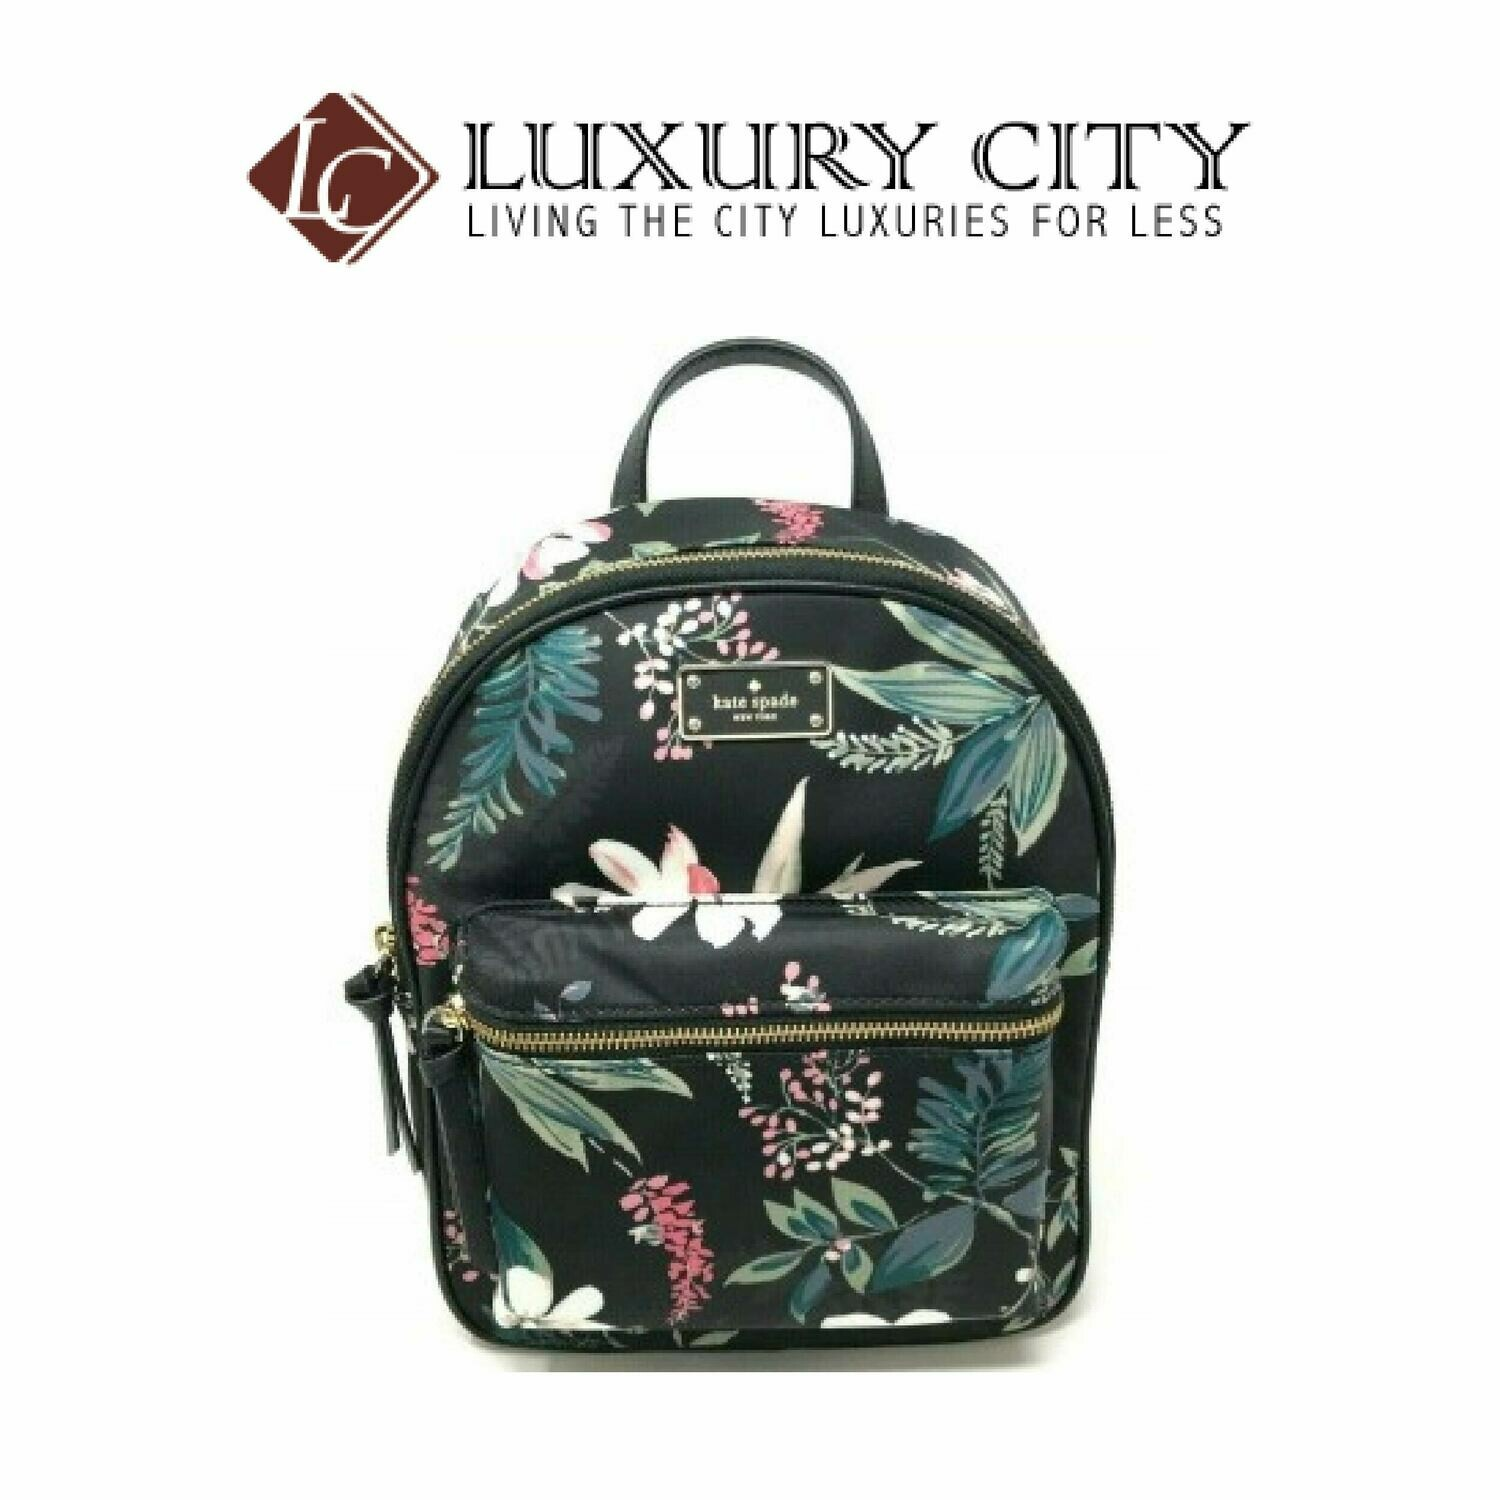 [Luxury City] Kate Spade Small Bradley Wilson Road Botanical Floral Backpack Katespade-WKRU5753 (Black)